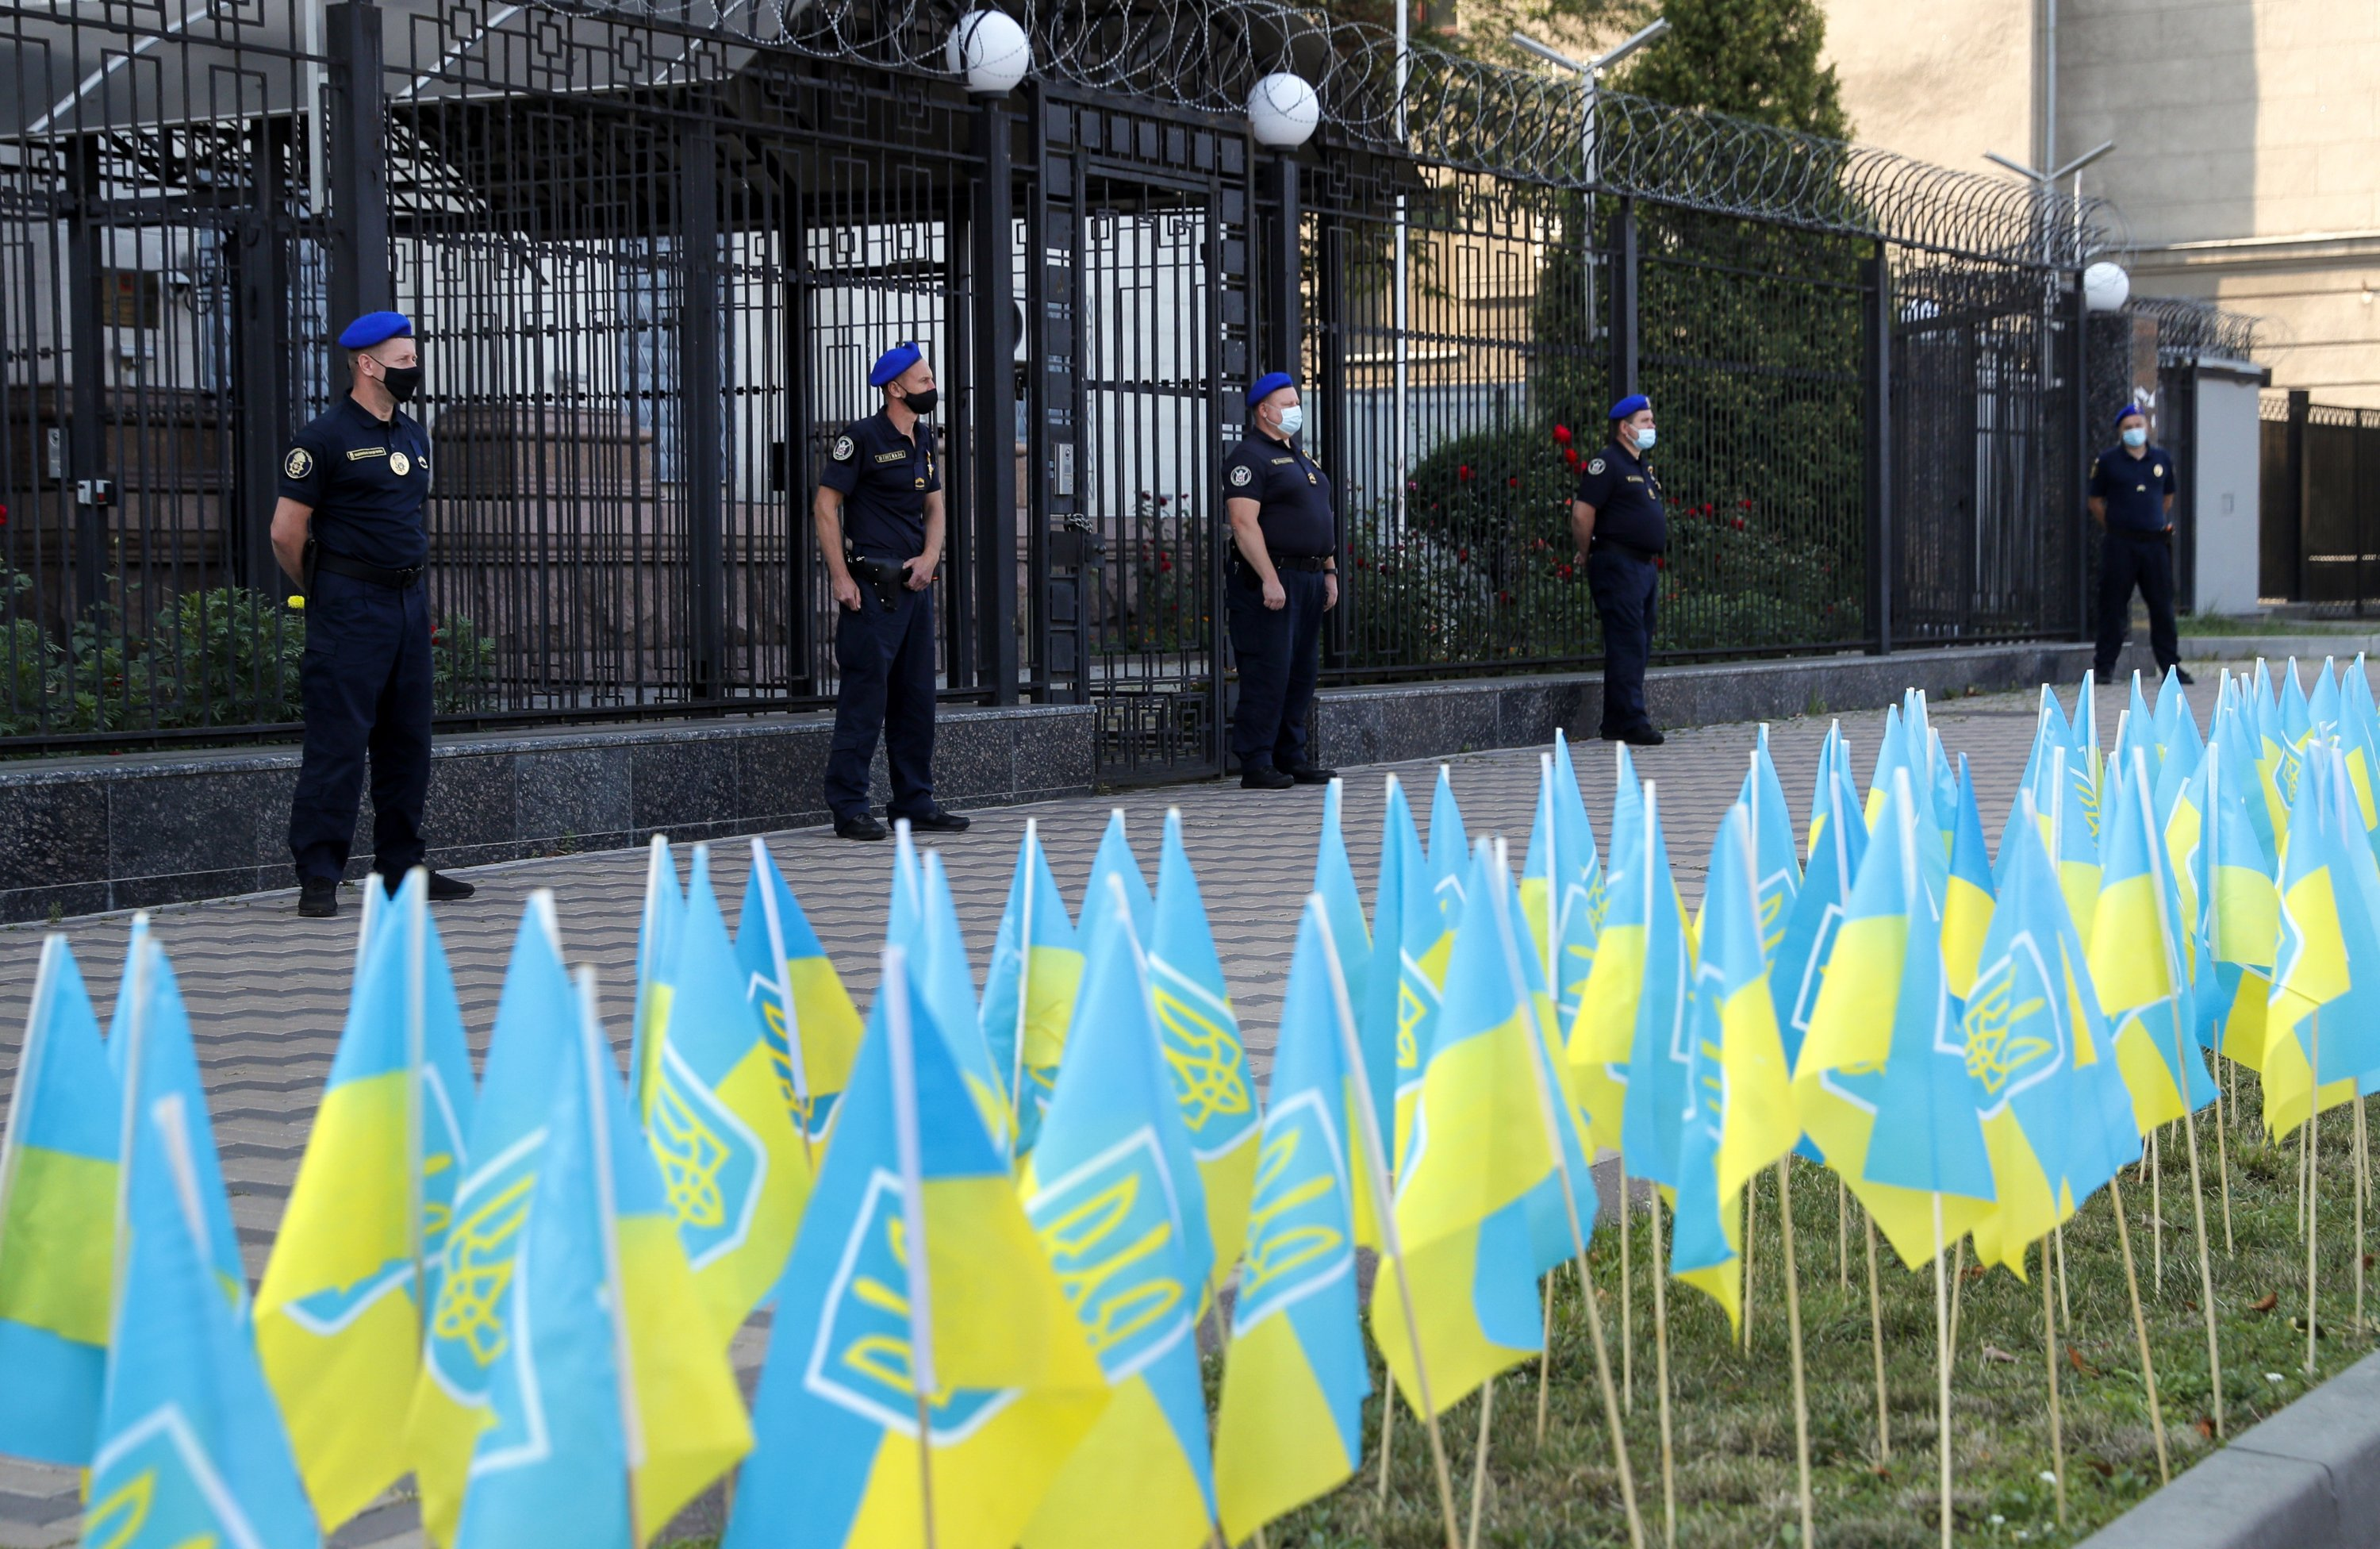 Embassy guards watch 150 Ukrainian flags placed in memory of the estimated 15,000 people killed in the Eastern Ukraine conflict, in front of the Russian embassy building in Kyiv, Ukraine, Aug. 23, 2021. (EPA Photo)